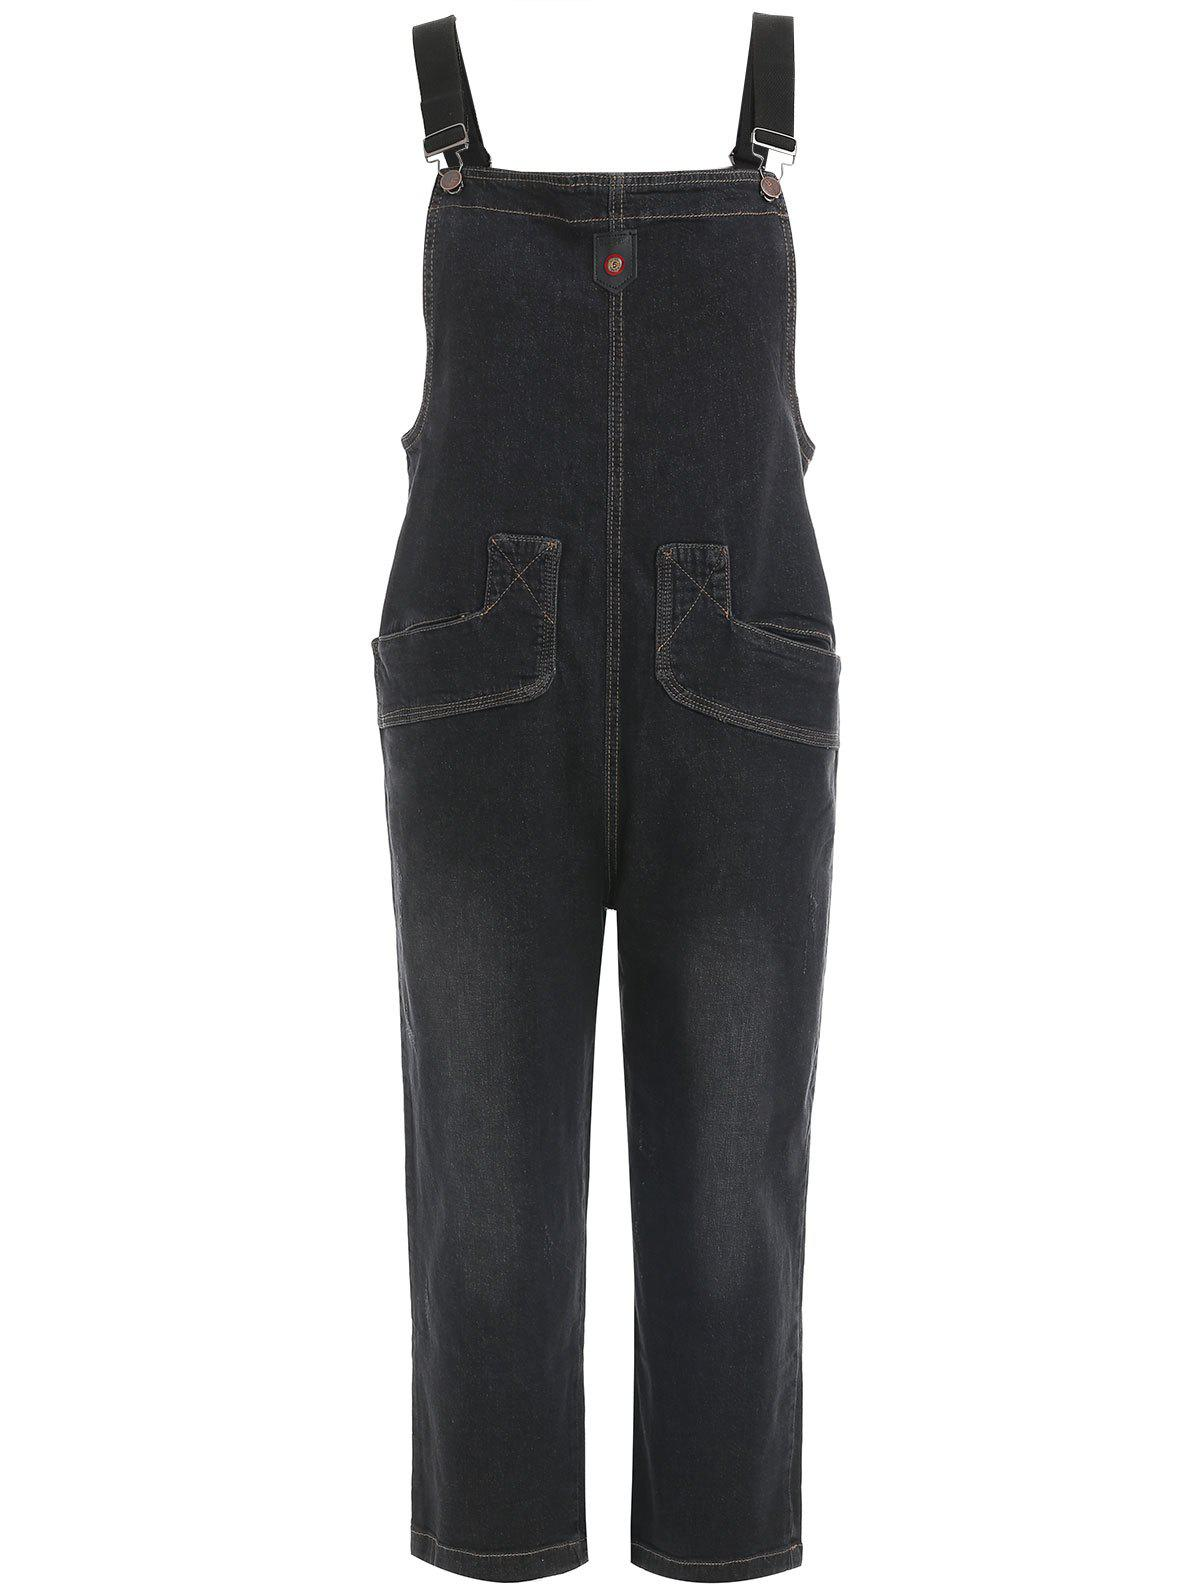 Fashion Wide Leg Jean Overalls with Pockets